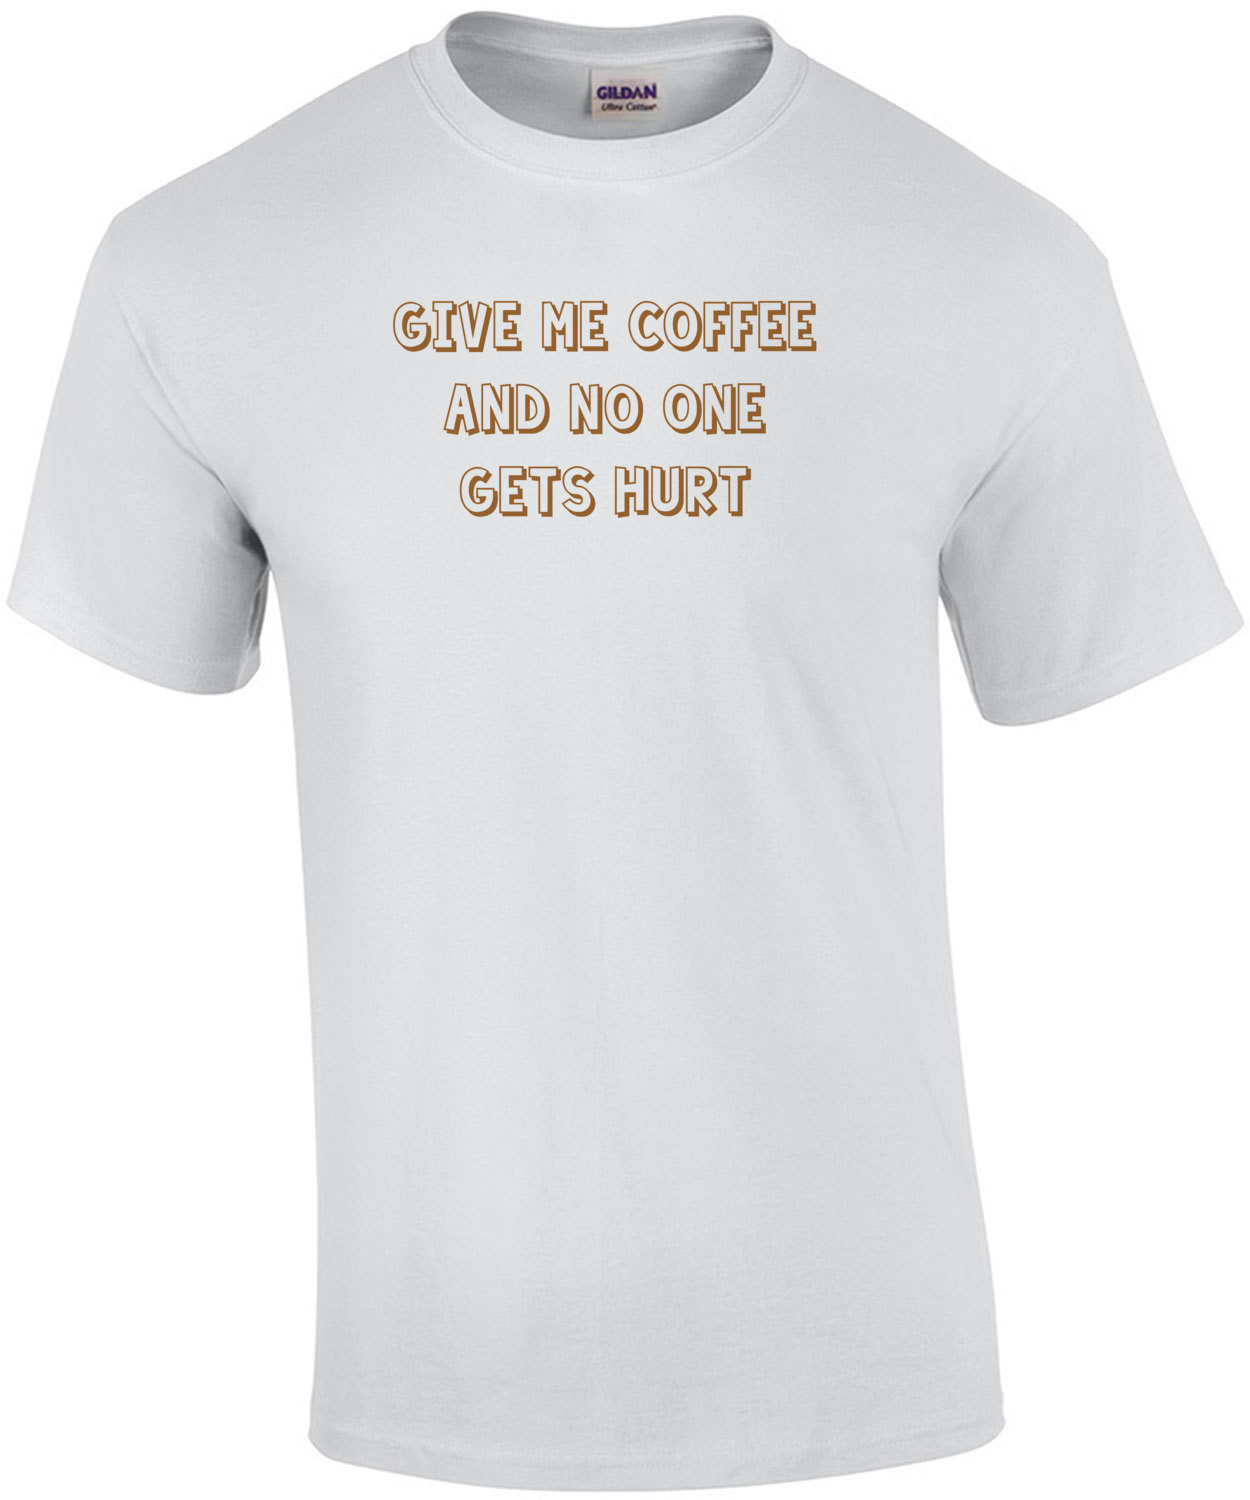 Give me coffee and no one gets hurt. Shirt